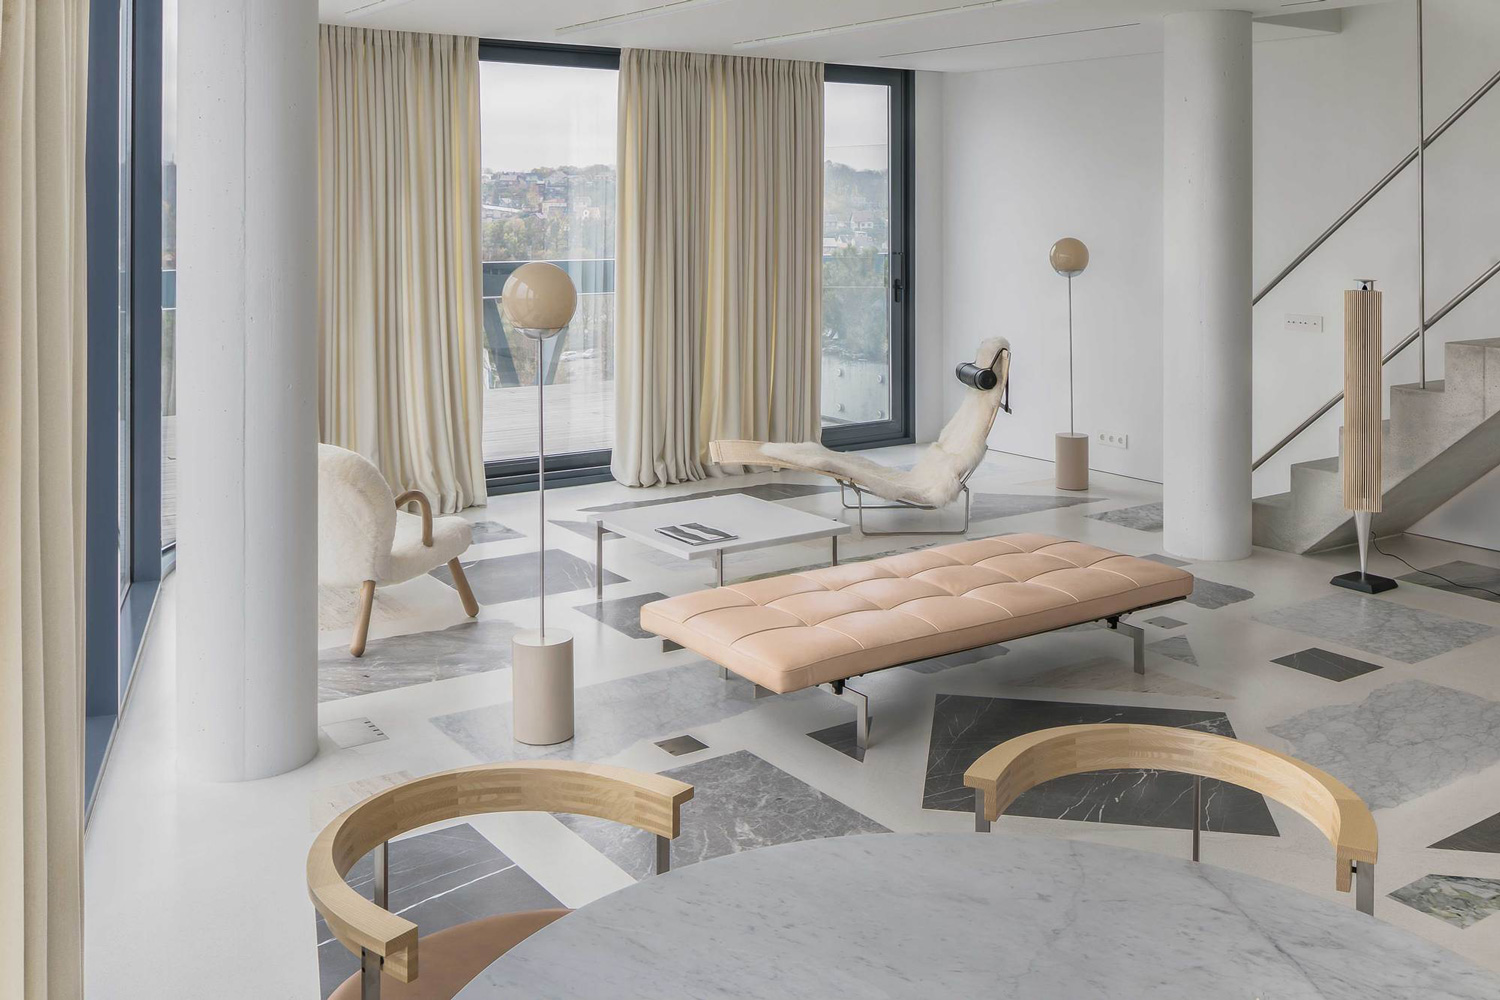 Eclectic Trends | The bold custom terrazzo floor by Do Architects